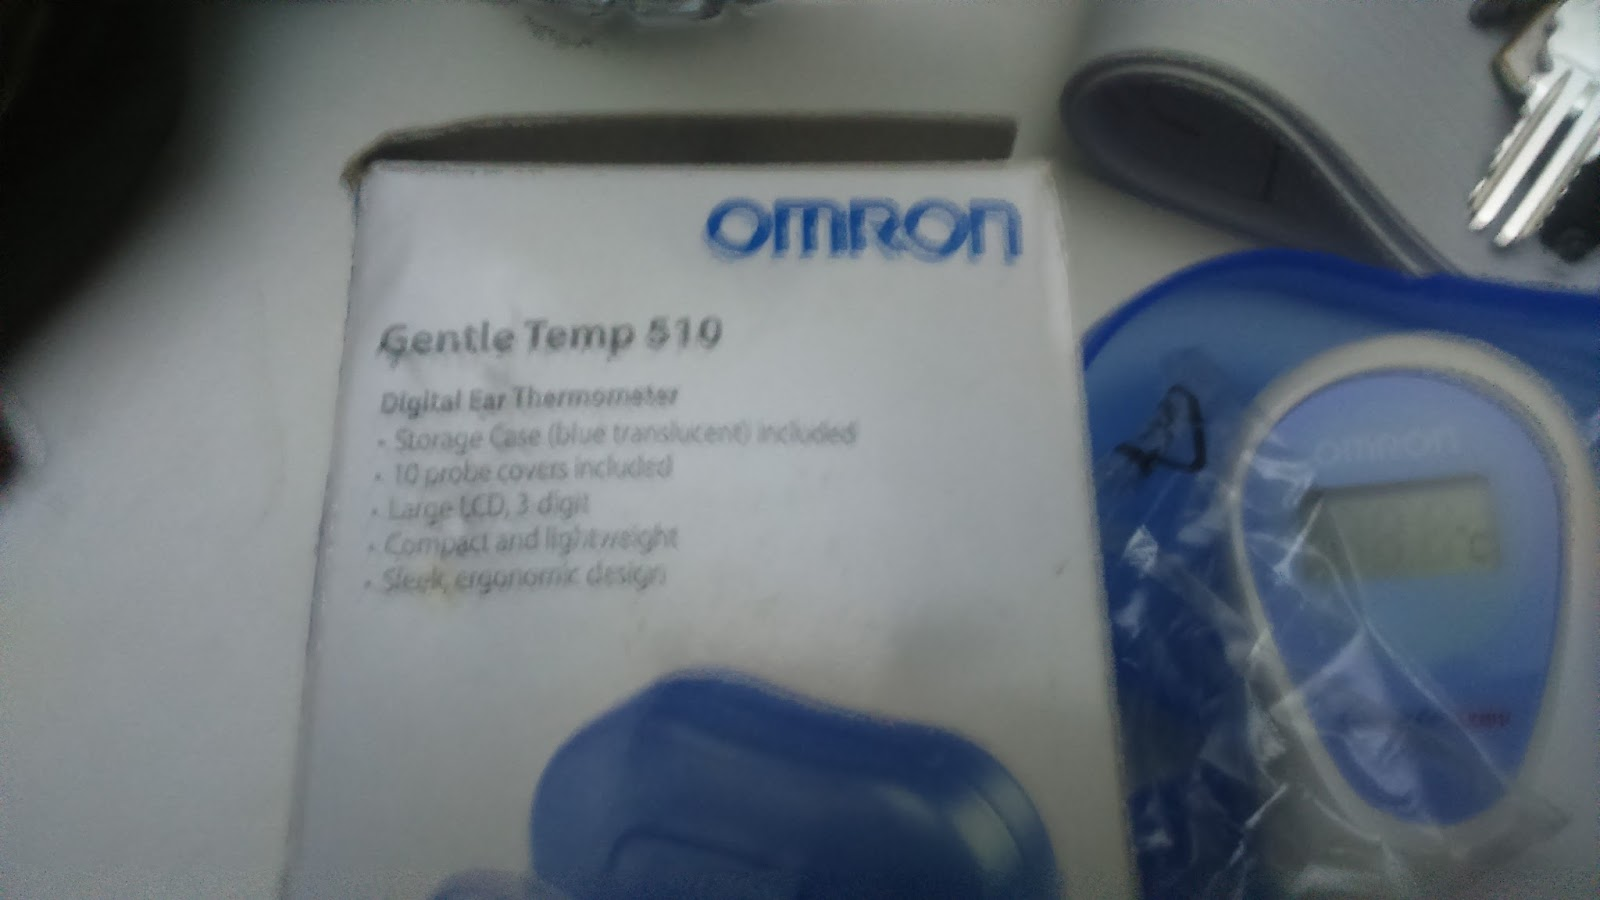 omron gentle temp 510 manual